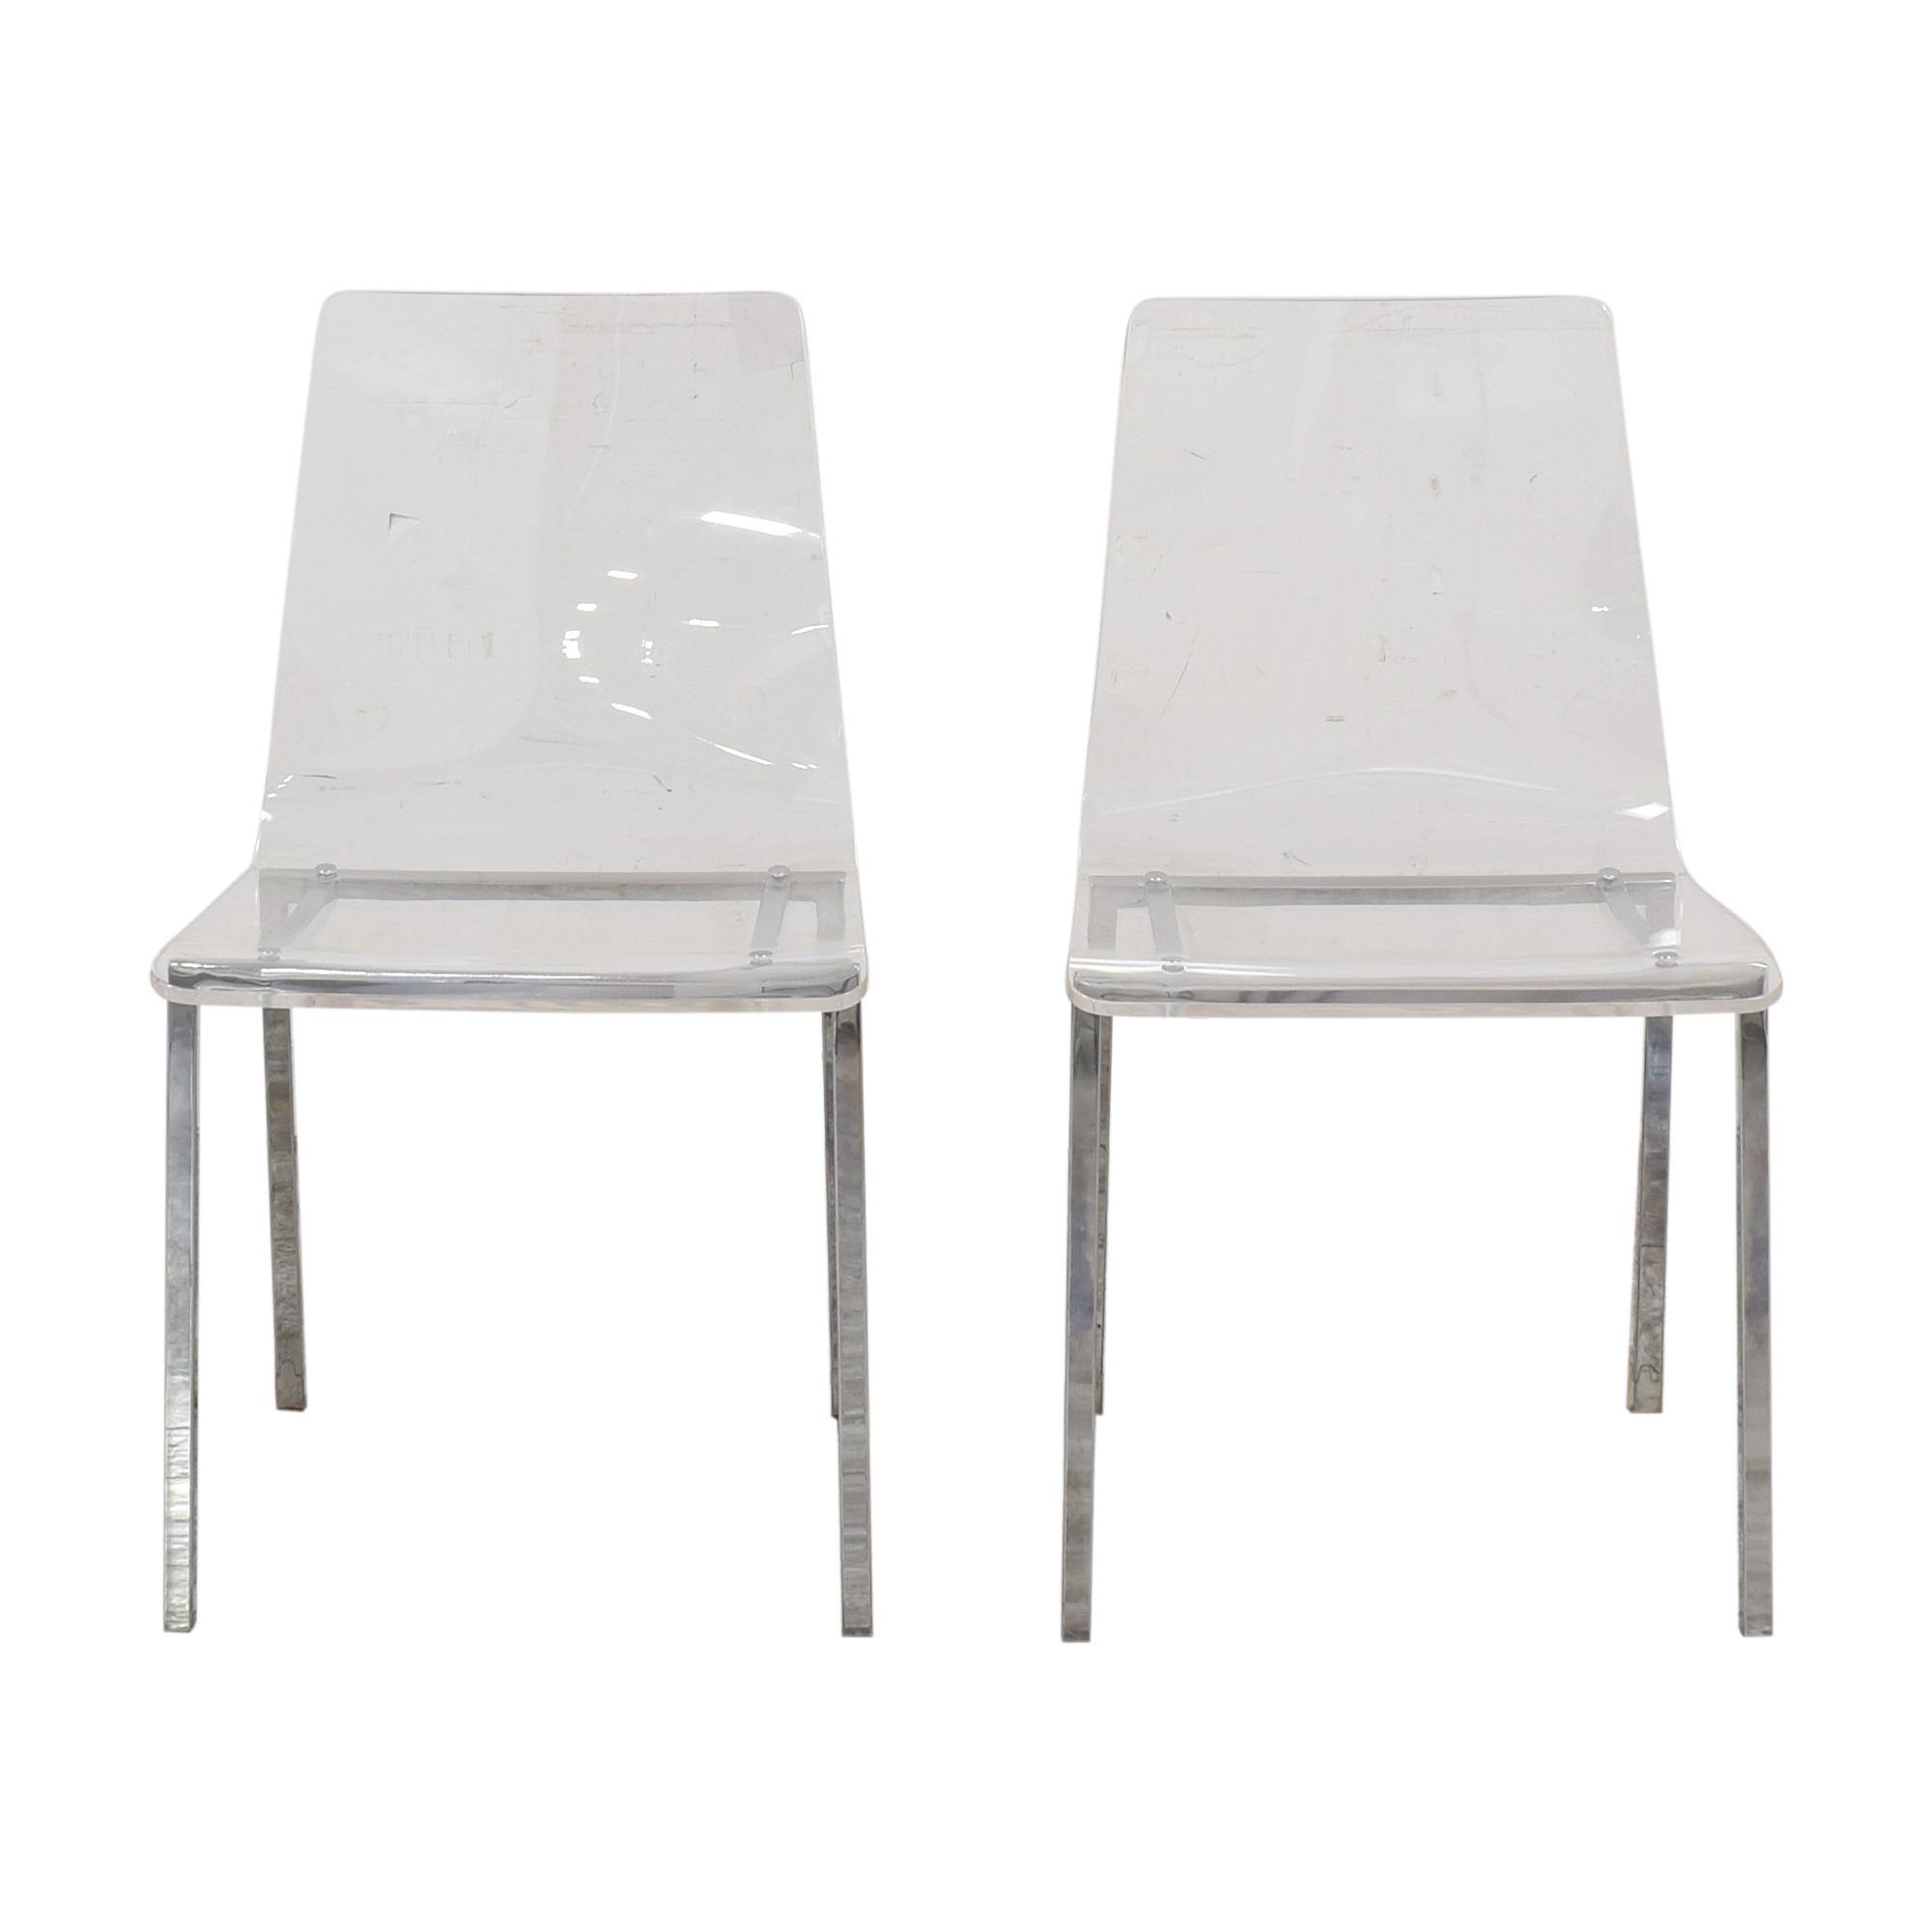 CB2 CB2 Vapor Acrylic Clear Dining Room Chairs coupon